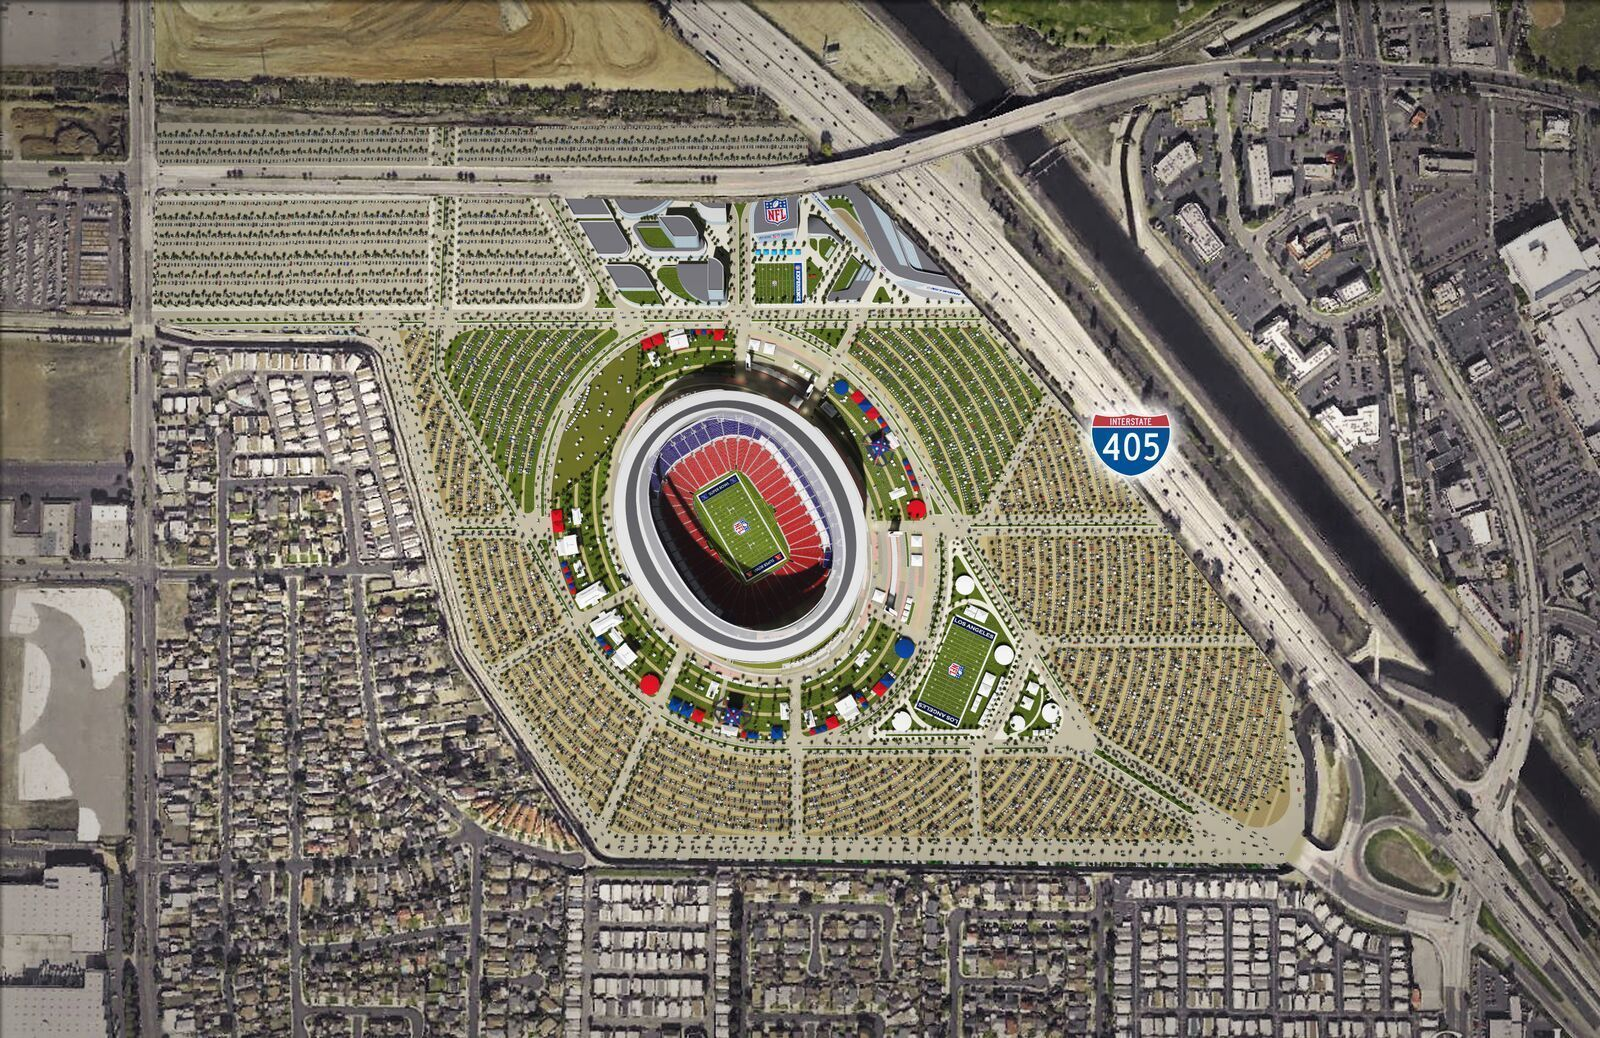 Corner Lot Floor Plans Rival Developers Have Viewed Carson As An Nfl Stadium Site